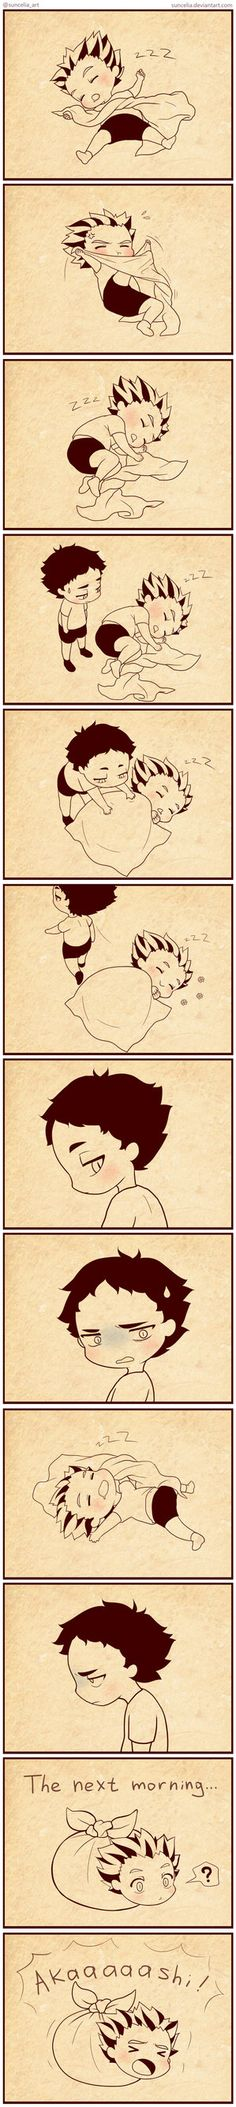 Haikyuu!! How do owls sleep by Suncelia.deviantart.com on @DeviantArt